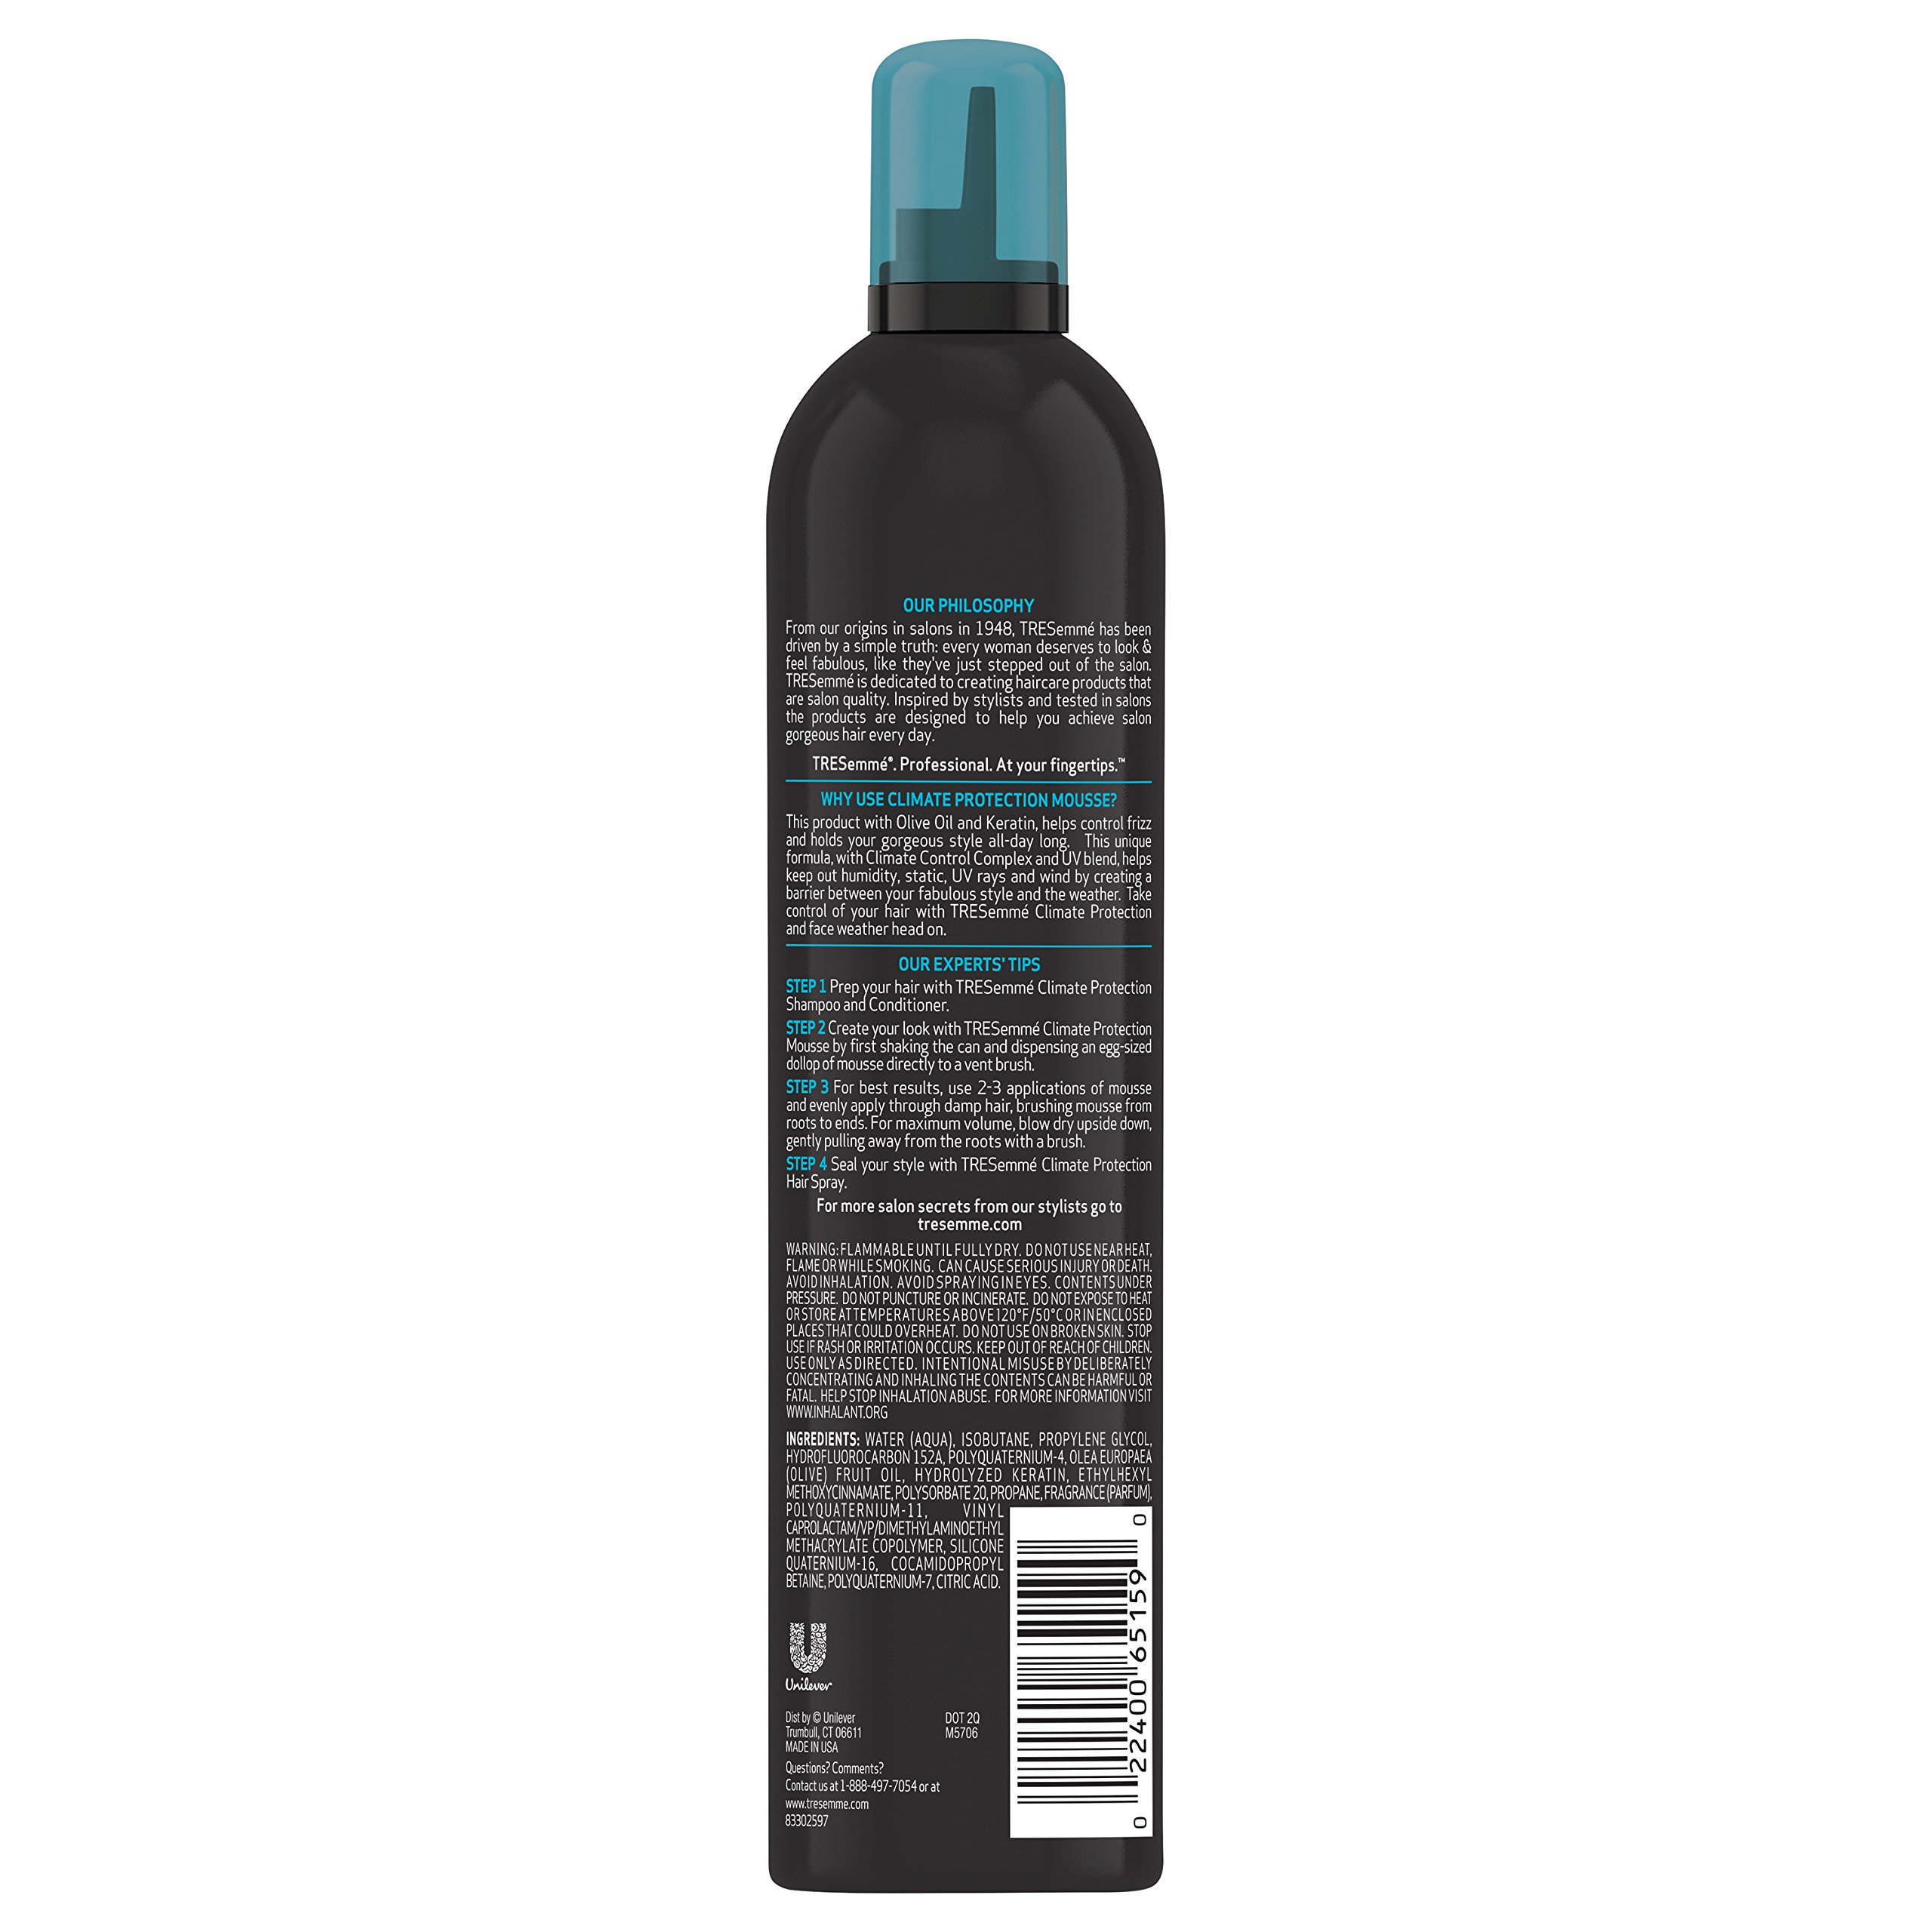 TRESemme Climate Control Mousse, 10.5 Ounce (Pack of 6) by TRESemme (Image #2)